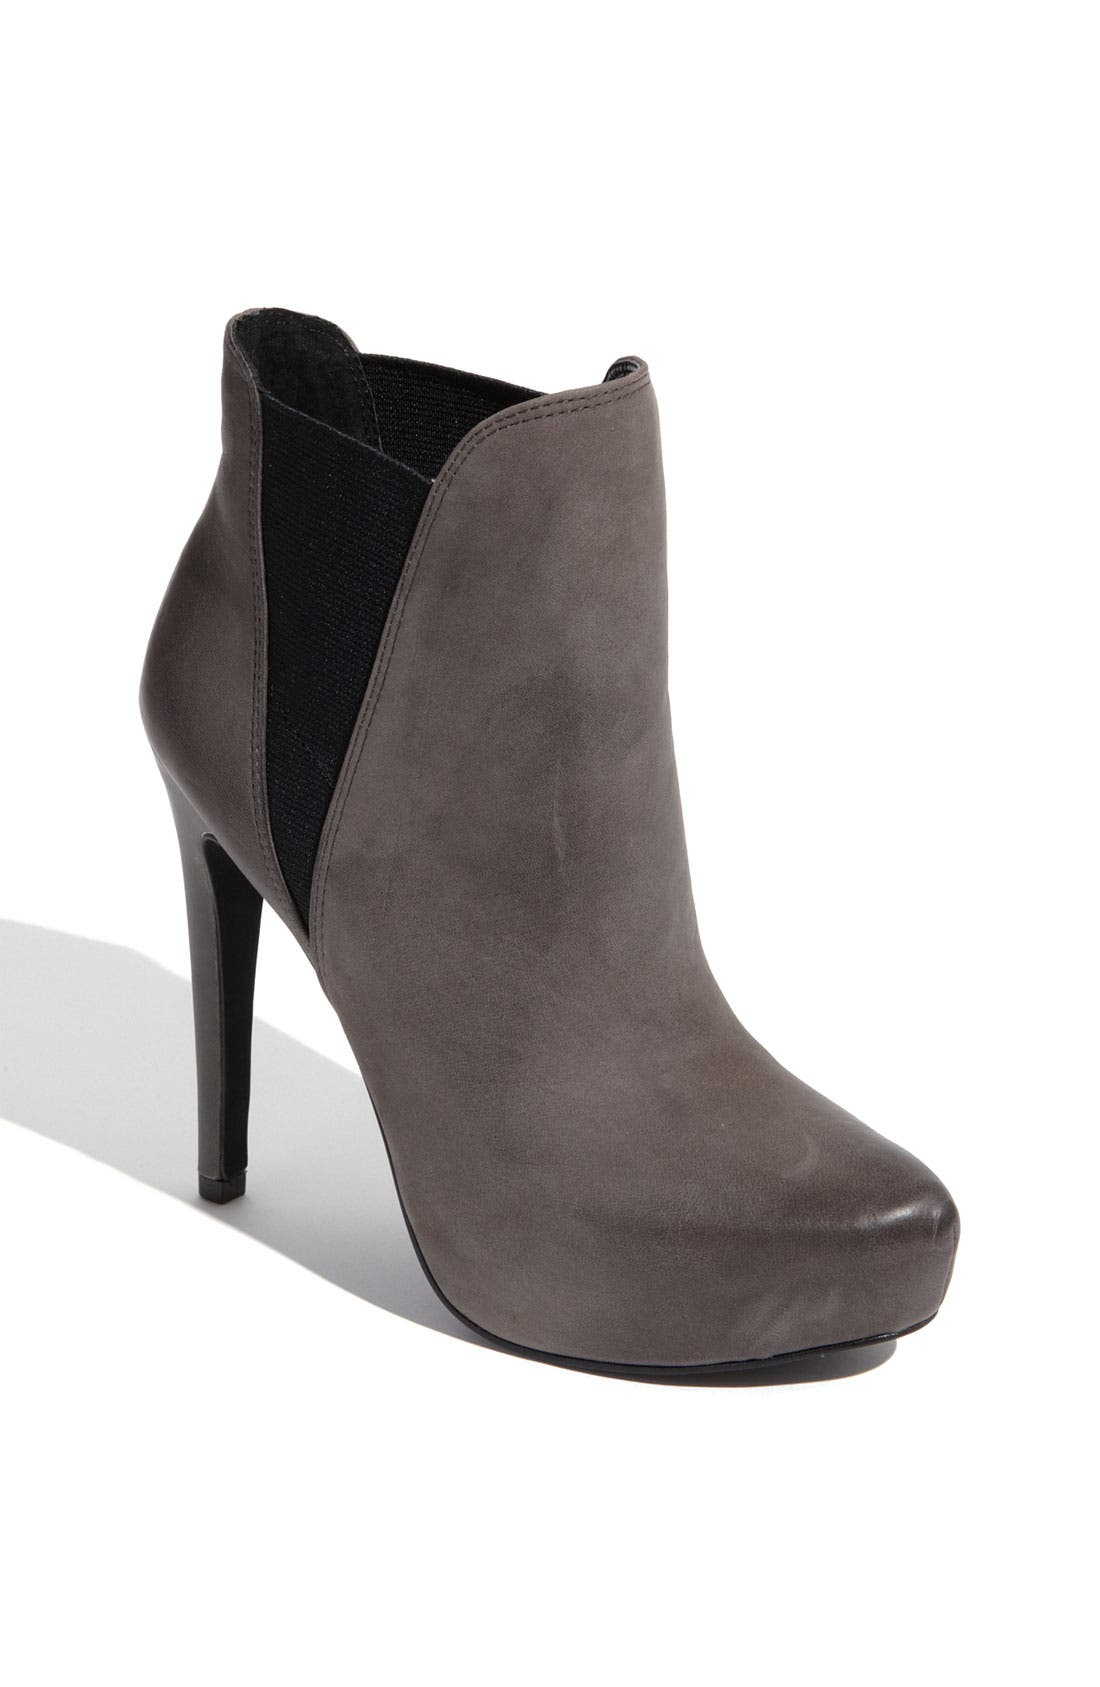 JESSICA SIMPSON 'Francis' Bootie, Main, color, 020